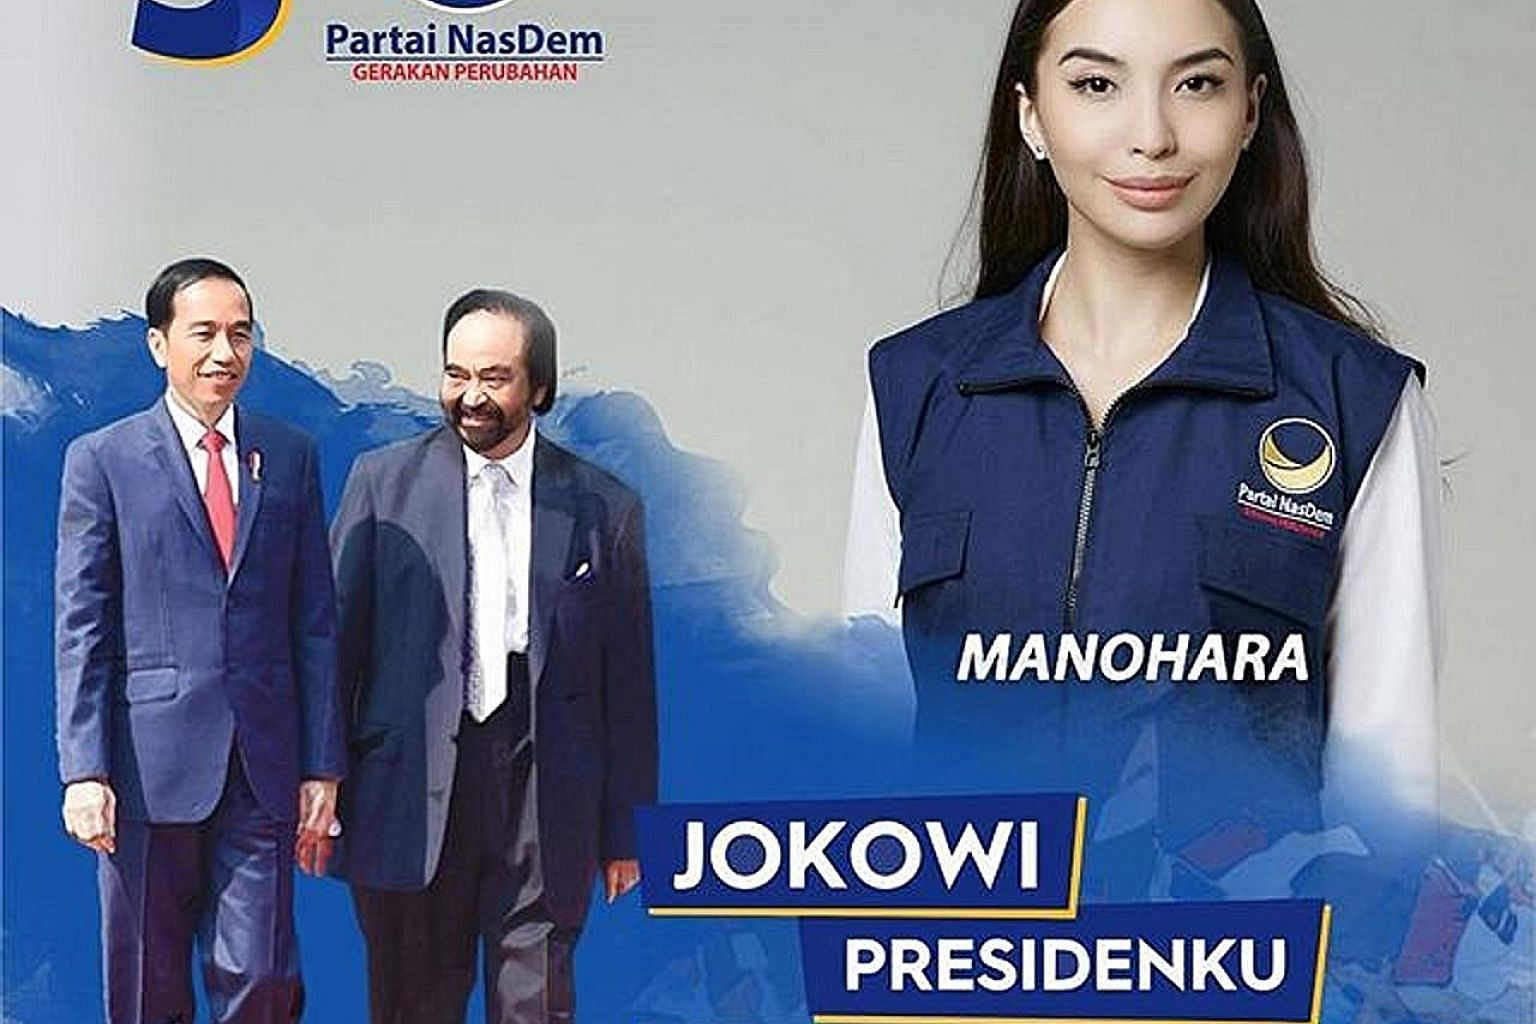 Ms Manohara Odelia Pinot in a picture also featuring President Joko Widodo (far left) and NasDem chairman Surya Paloh.